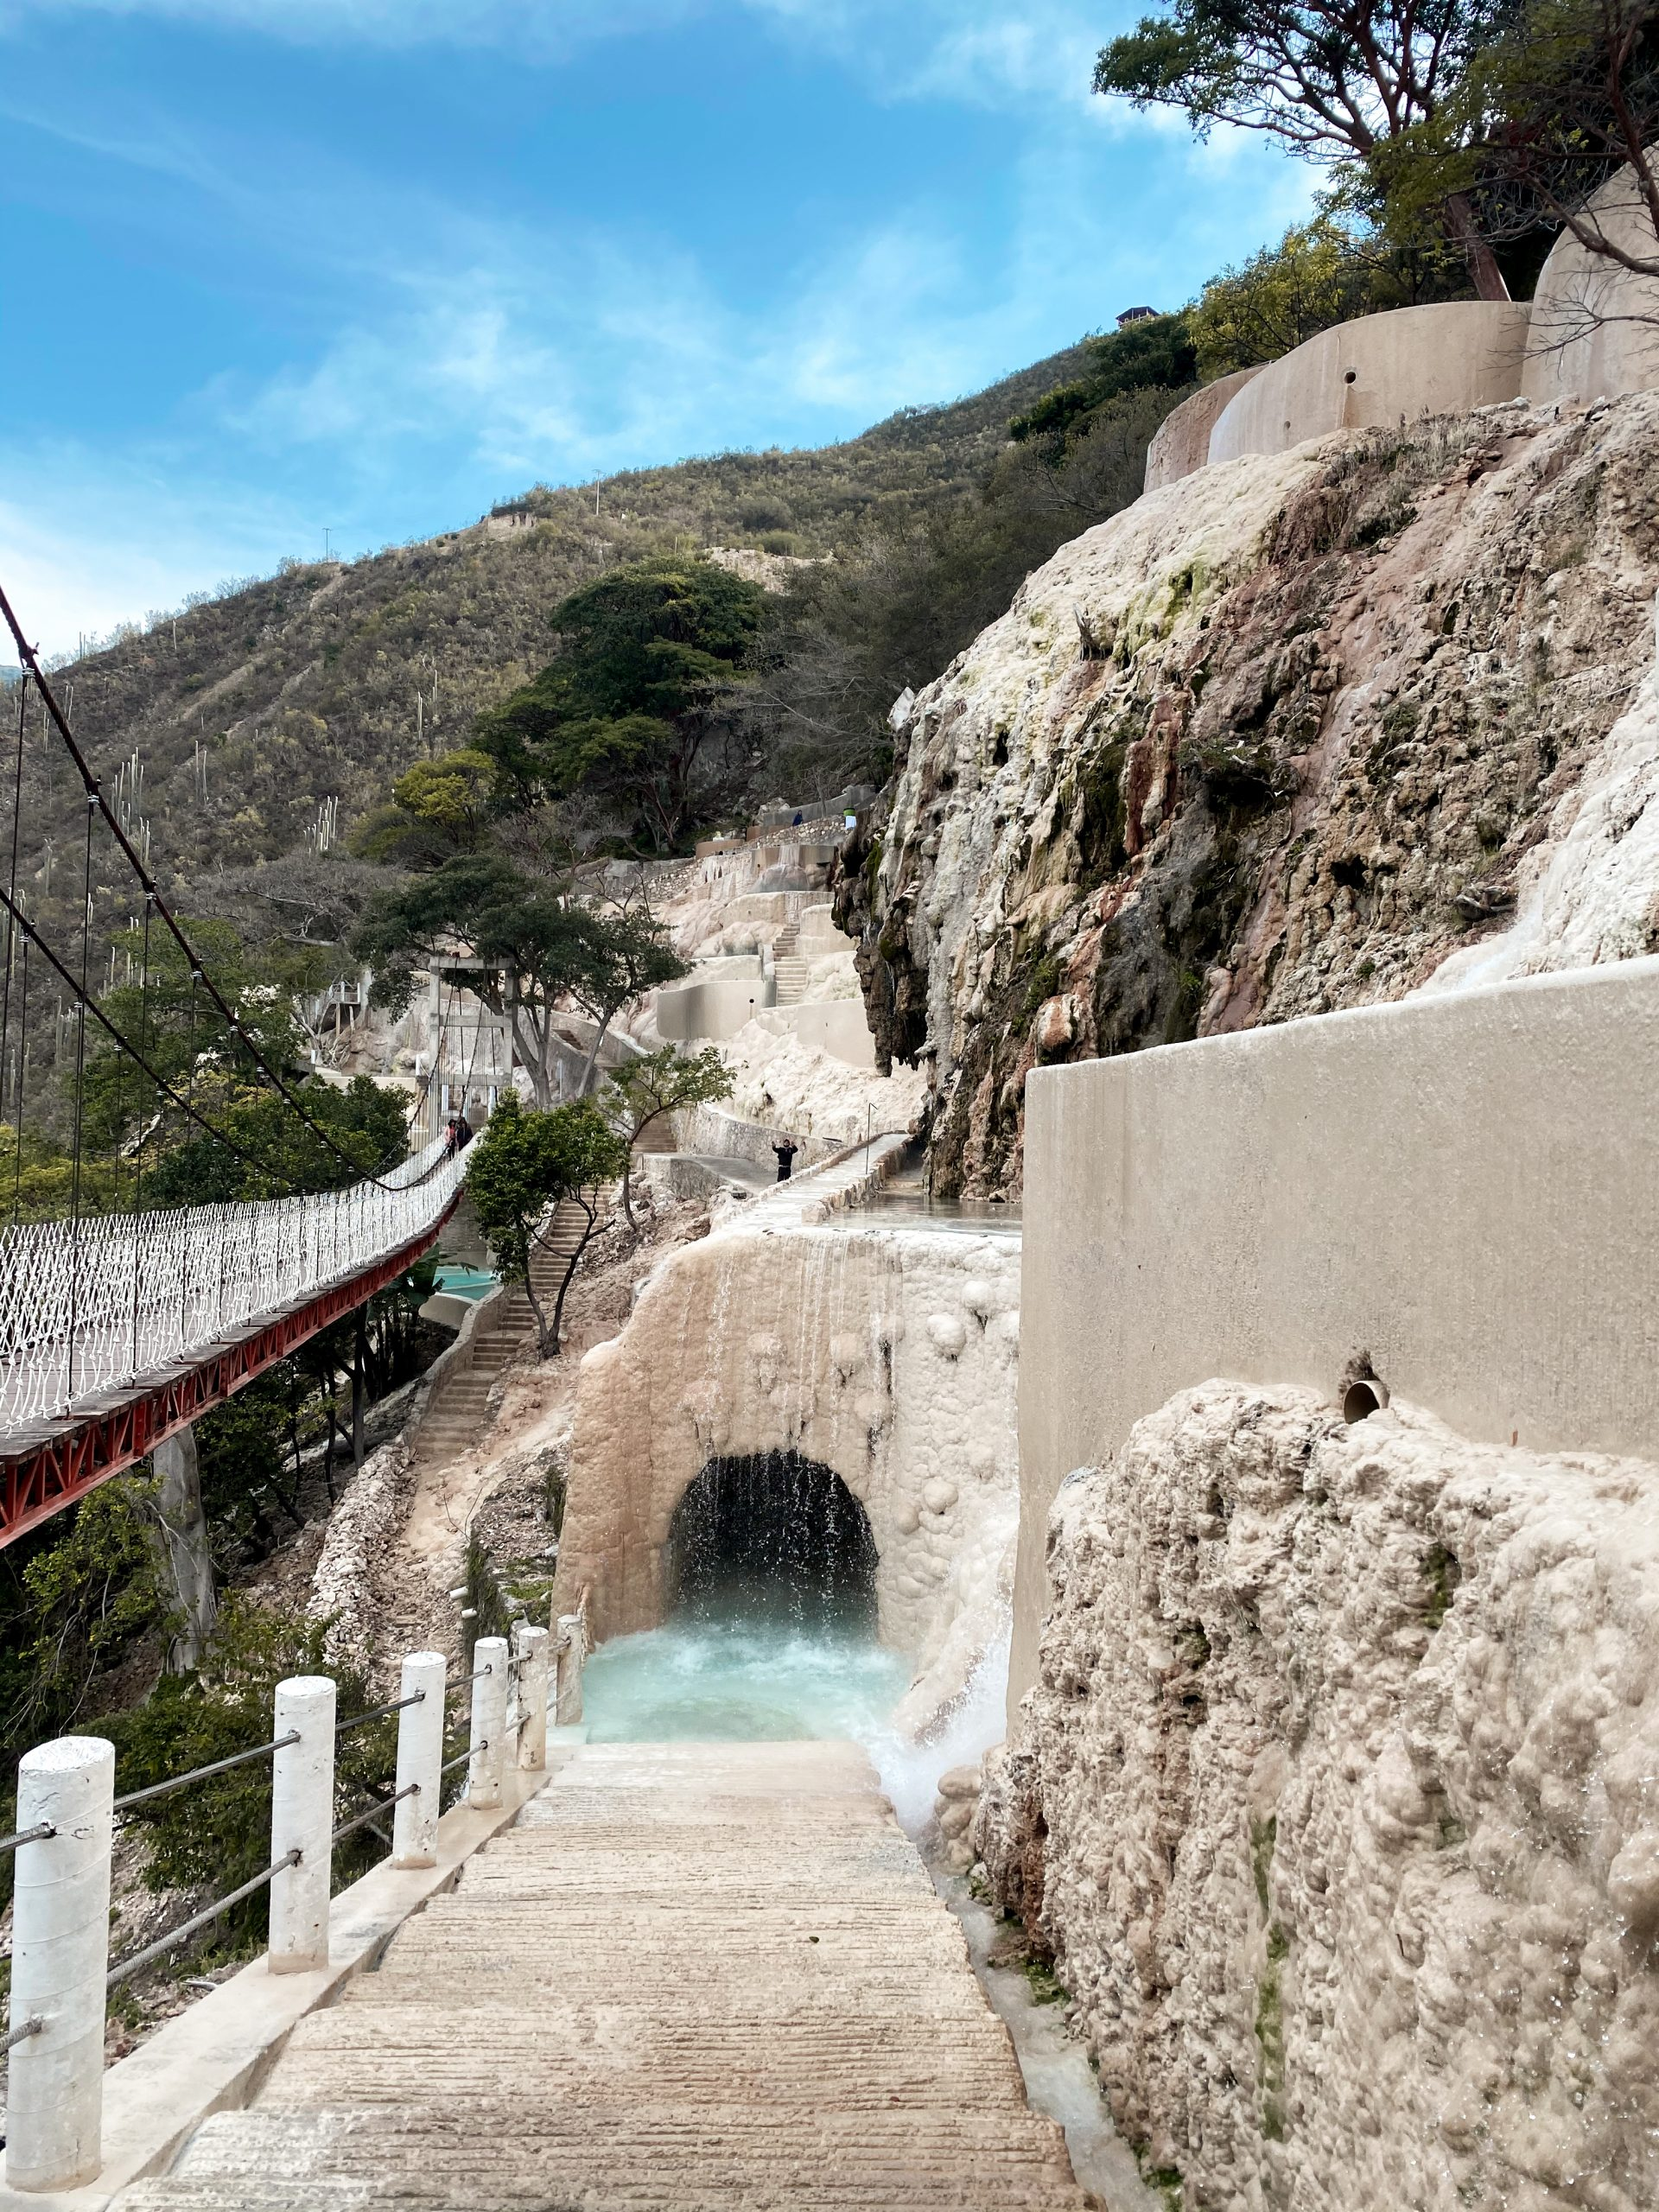 tunnel carved white stone thermal pool cliff side canyon natural hot springs grutas tolantongo hidalgo mexico water park suspension bridge mezquital valley